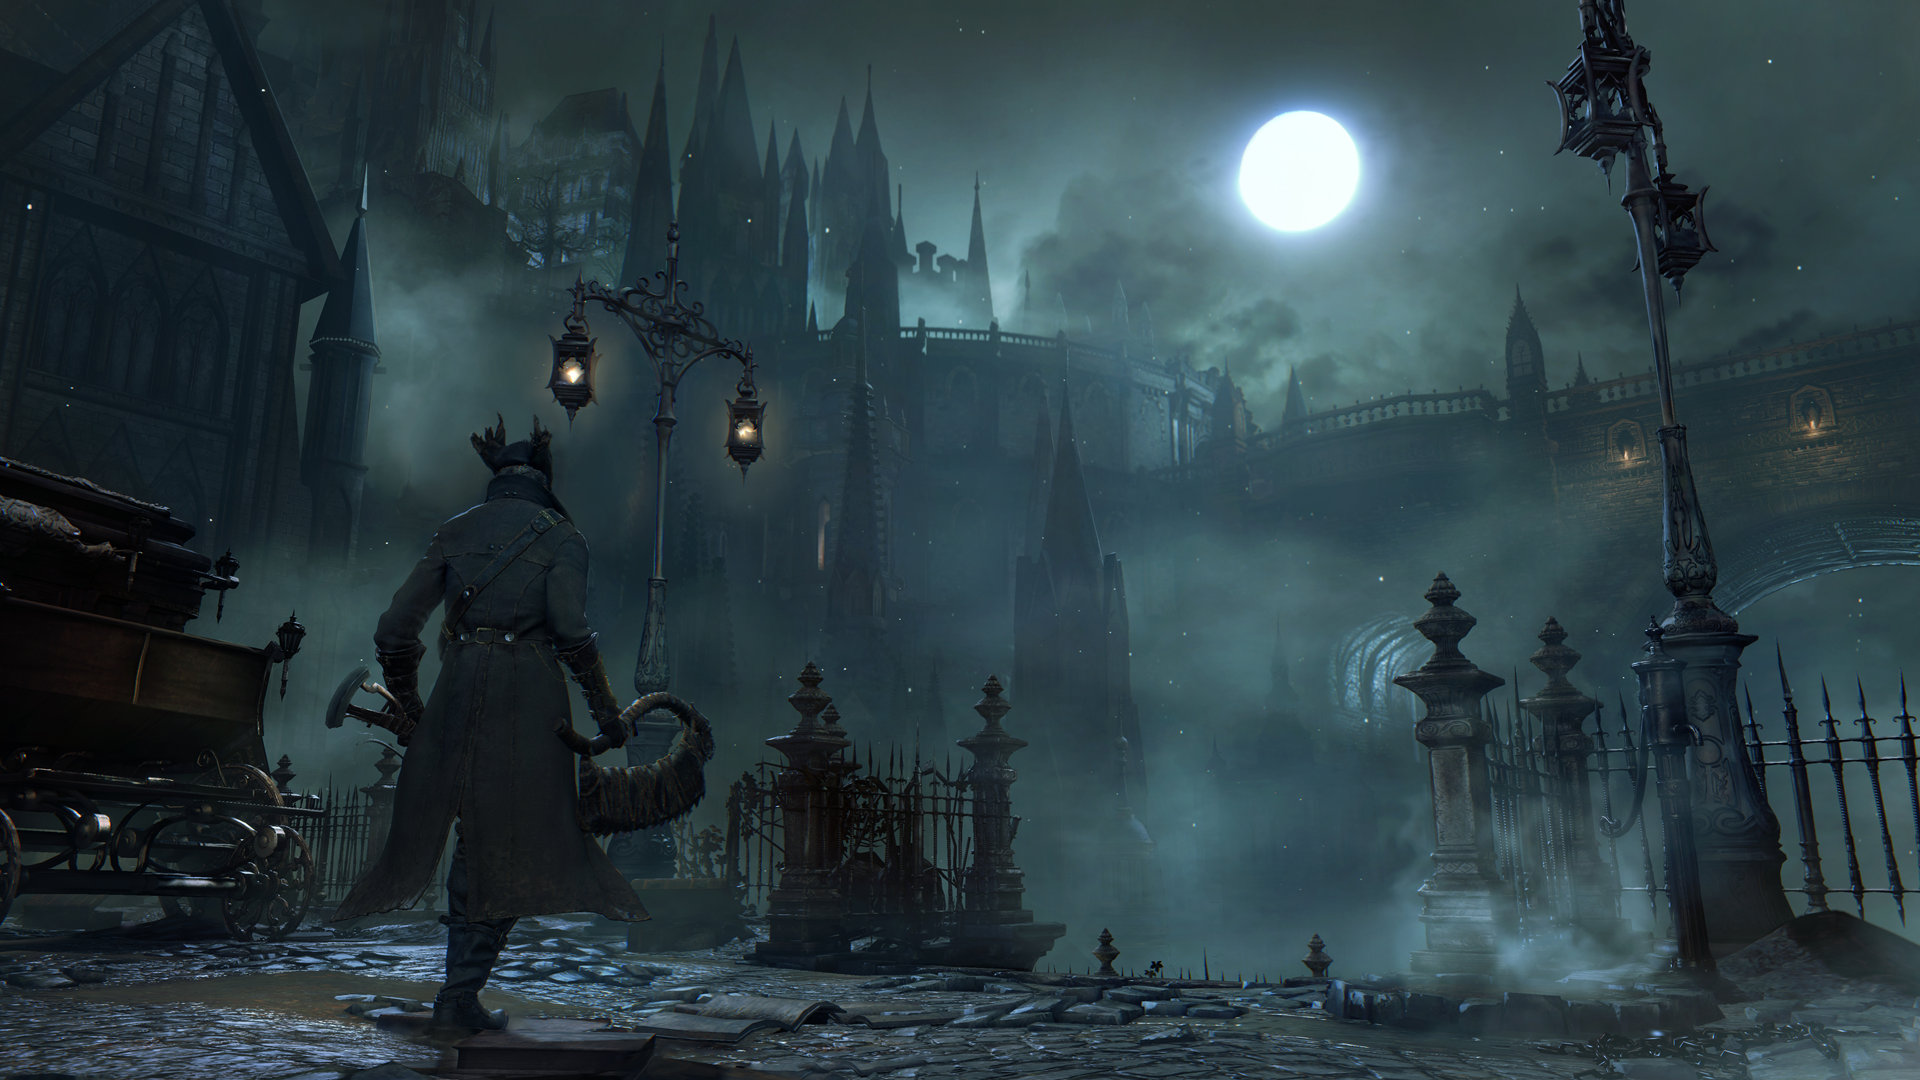 Datei:Bloodborne-screen-03-ps4-us-10jun14.jpg